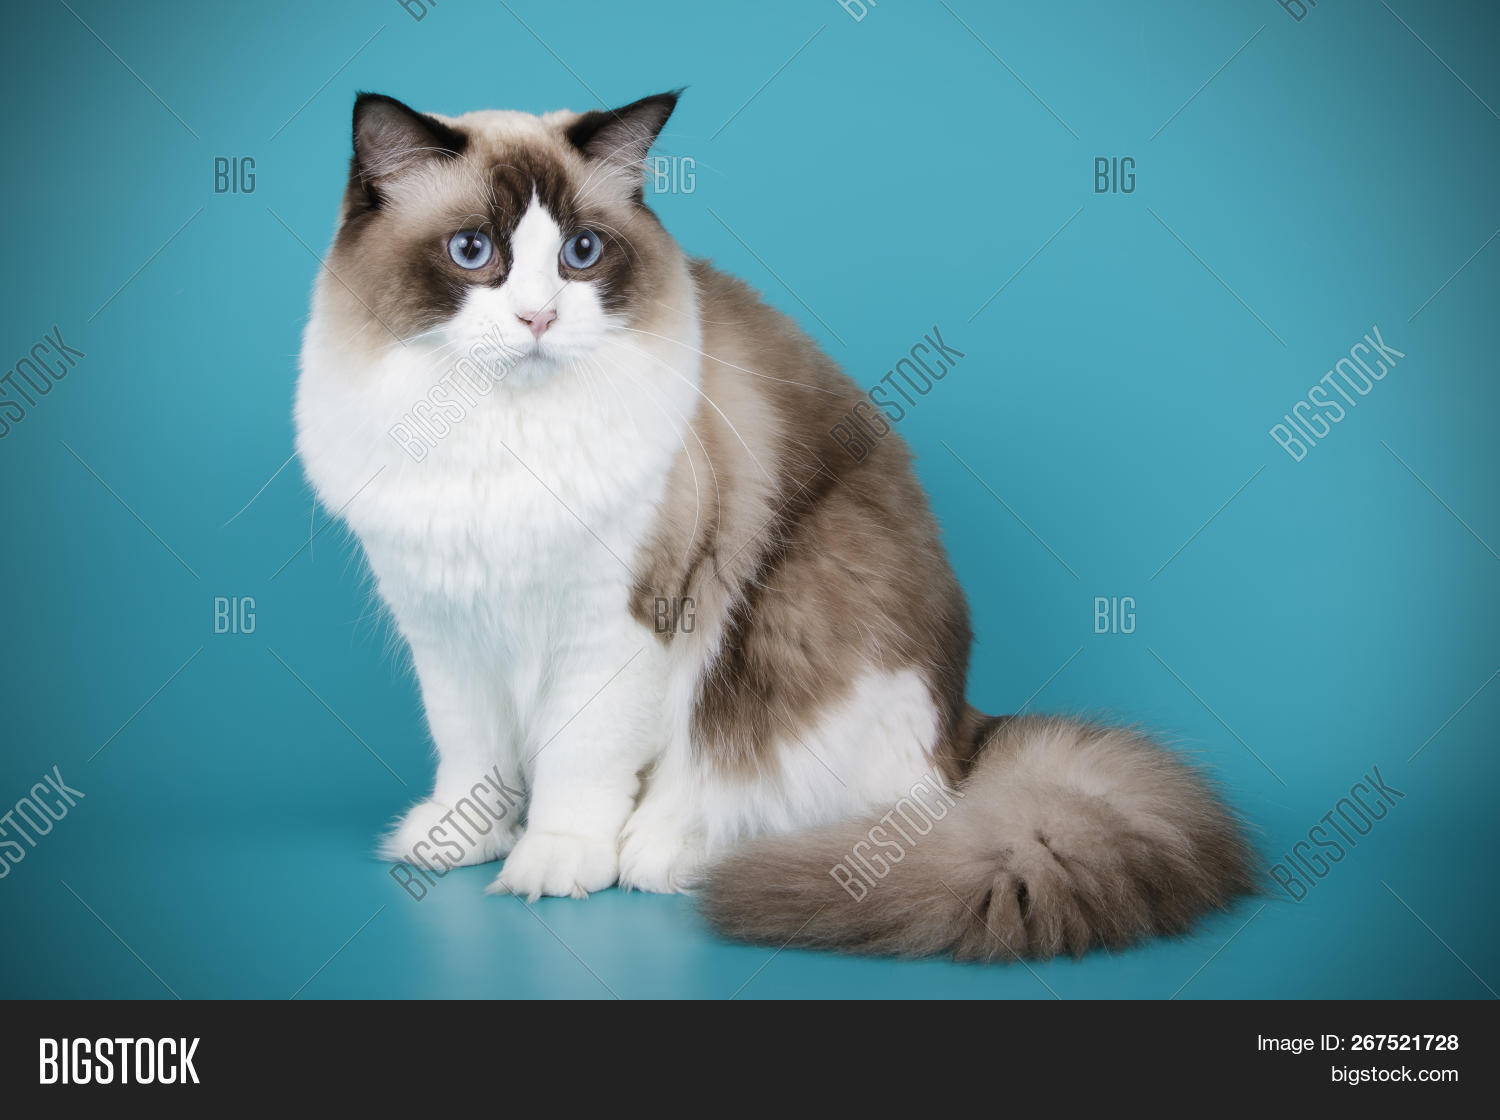 Ragdoll Cat On Colored Image Photo Free Trial Bigstock